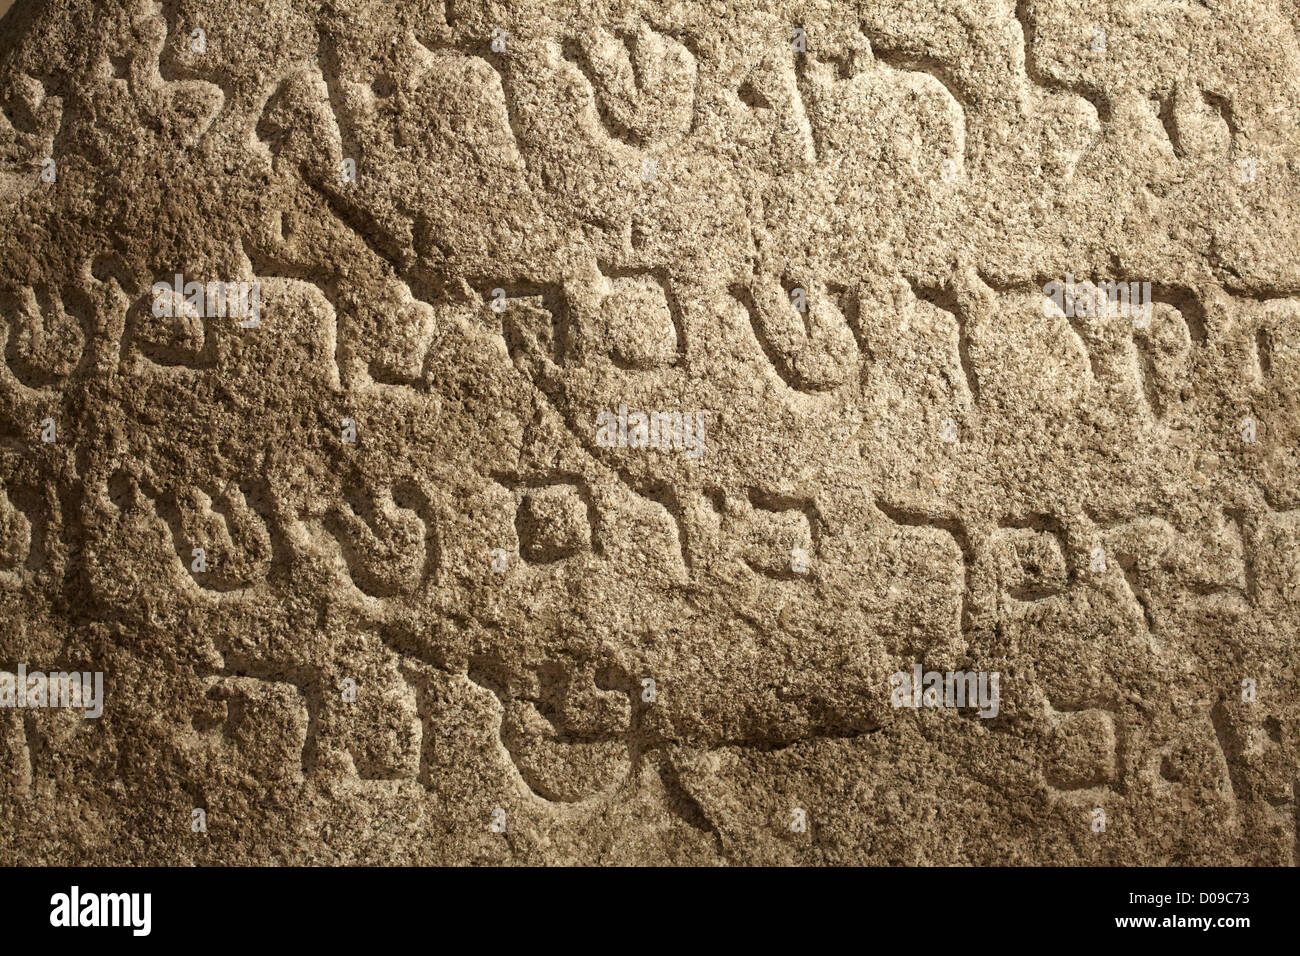 Jewish ancient holy writings on stone surface - Stock Image